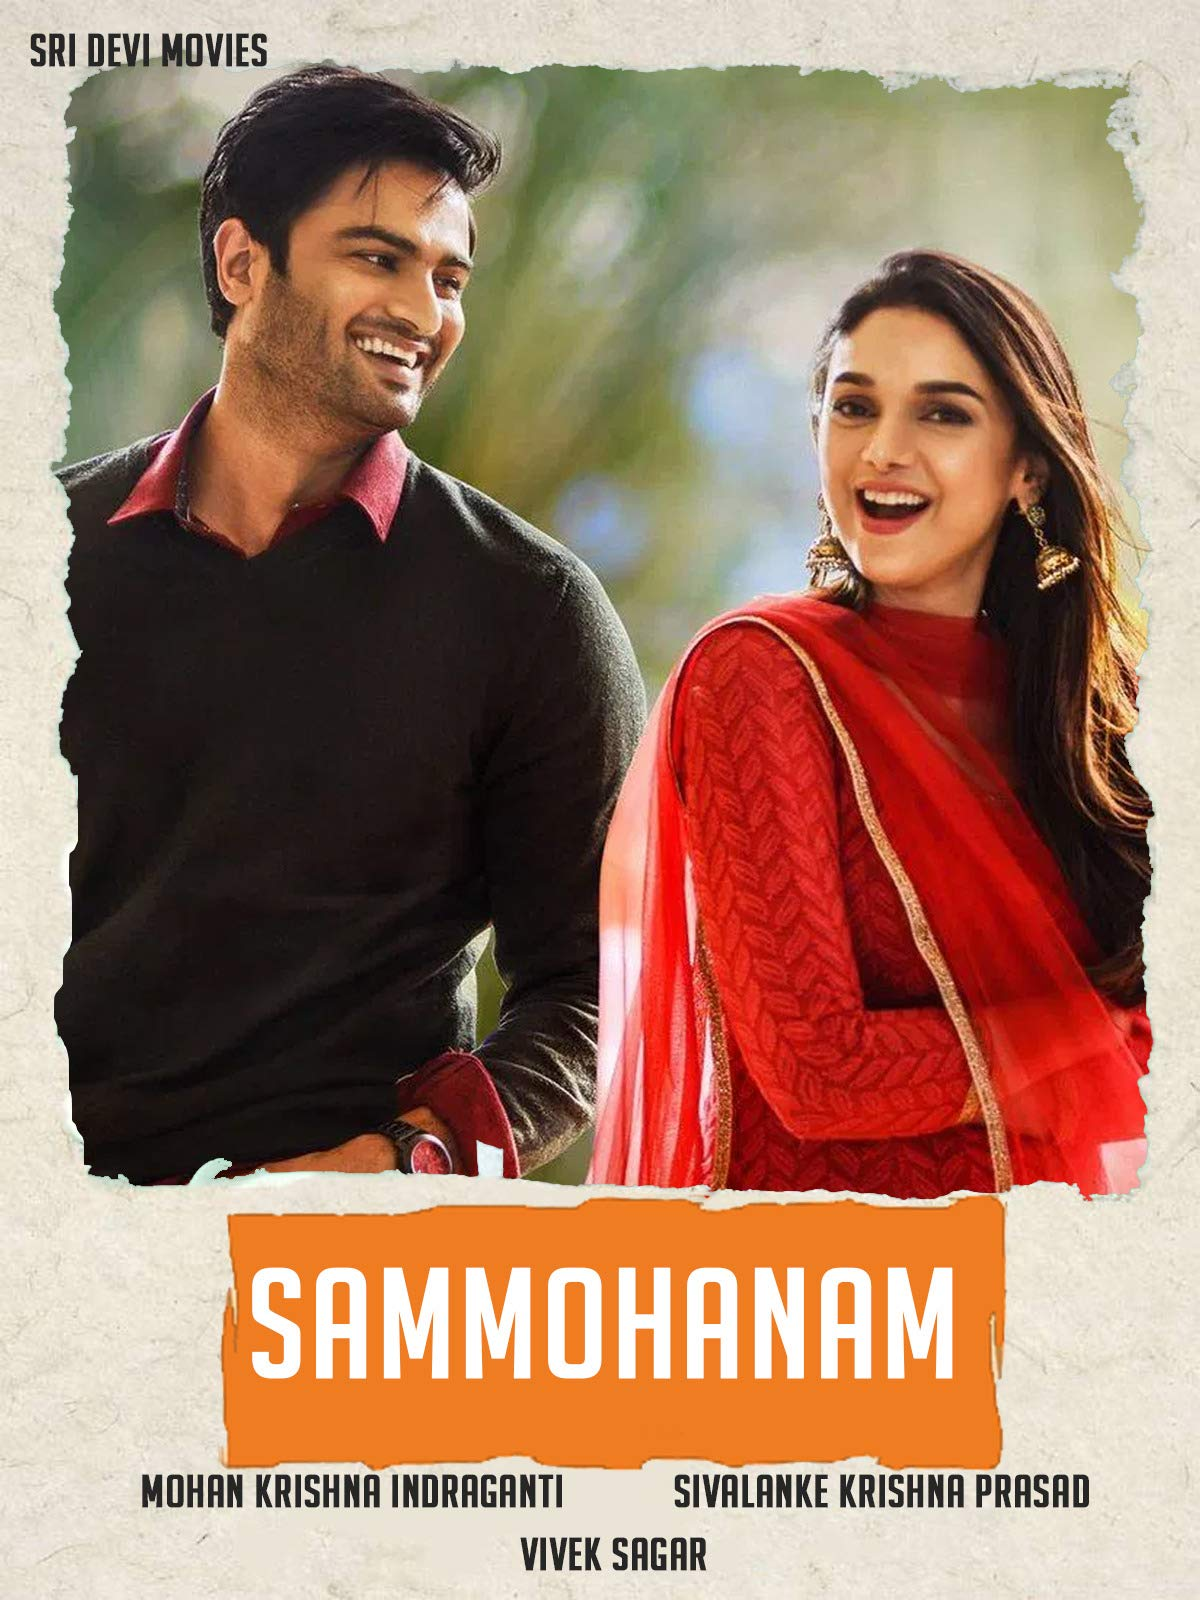 Watch Sammohanam Prime Video